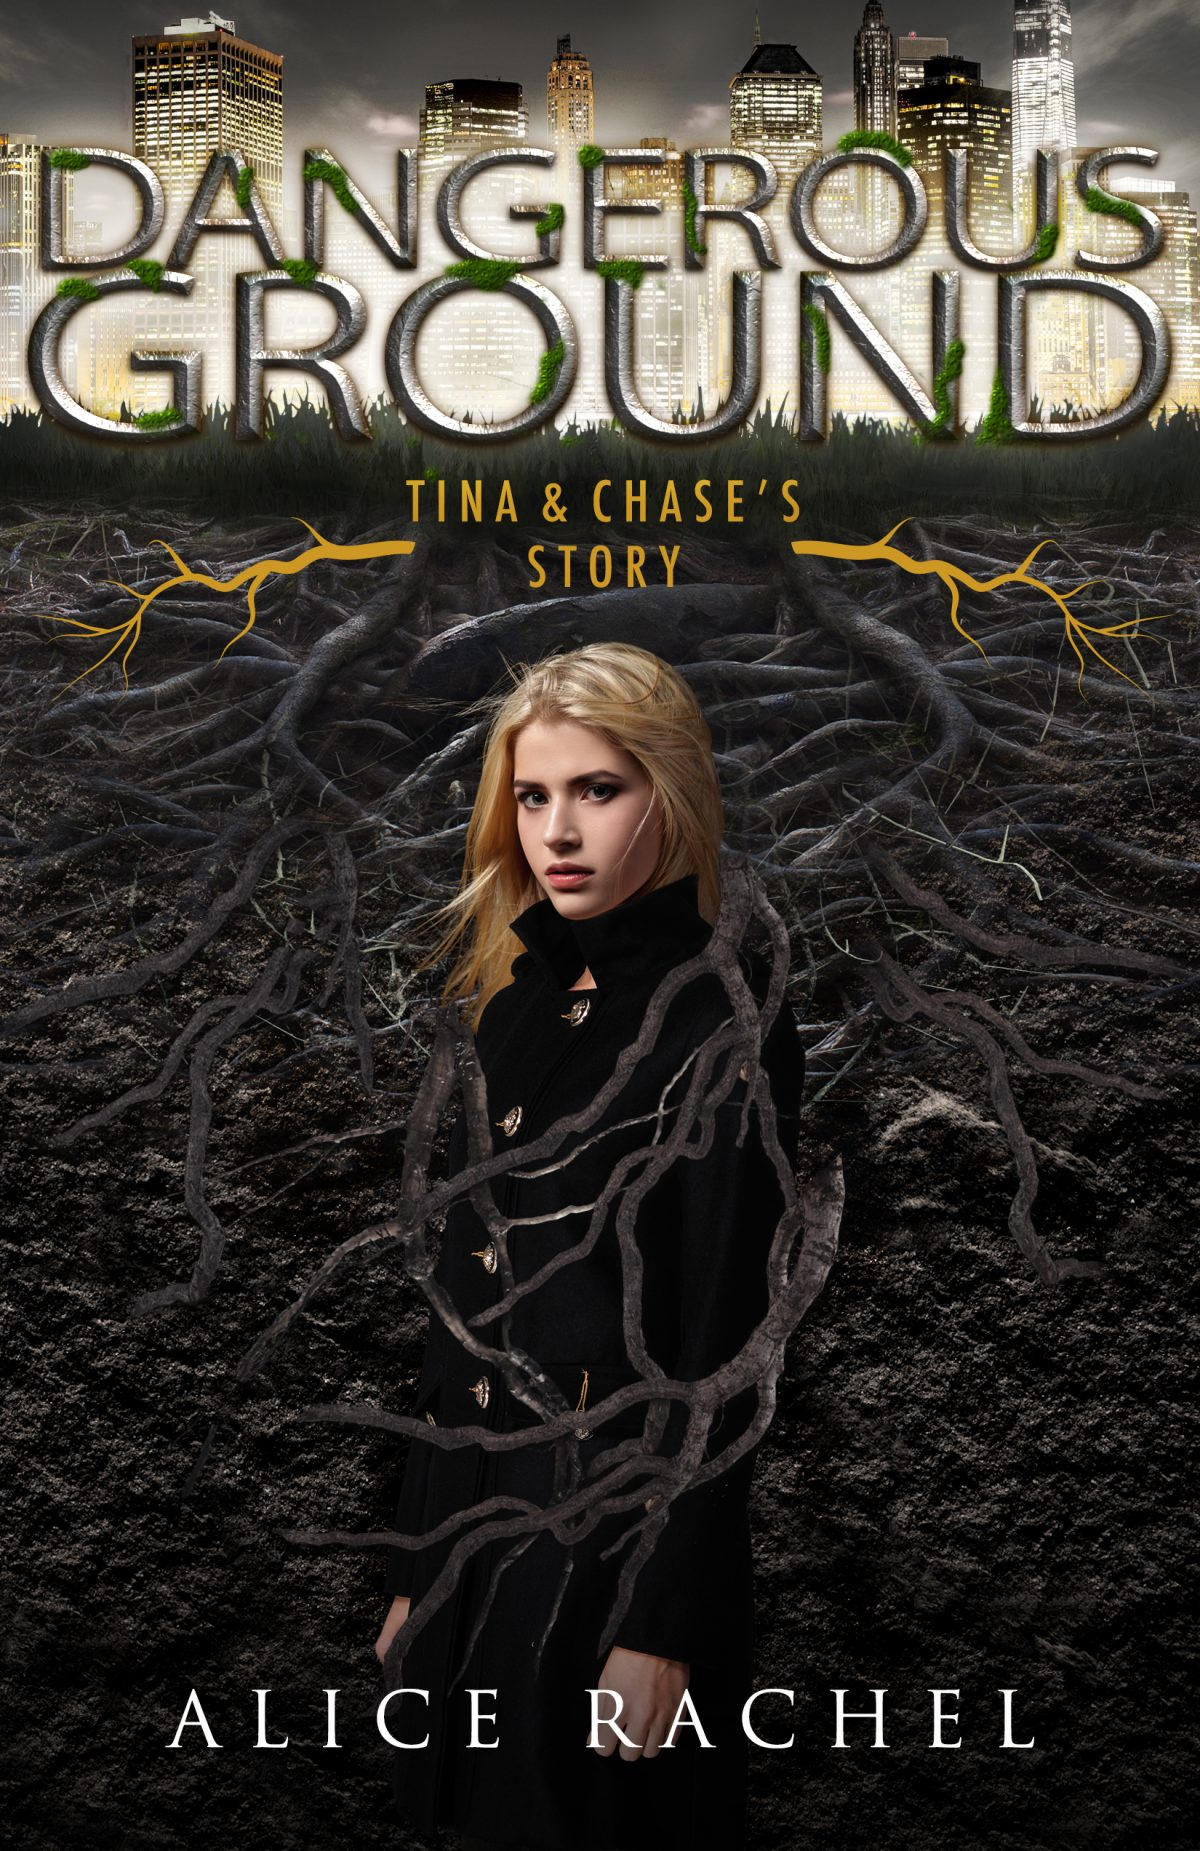 A white girl with blond hair looks over her shoulder.  She is covered in roots.  Behind her is a glowing city.